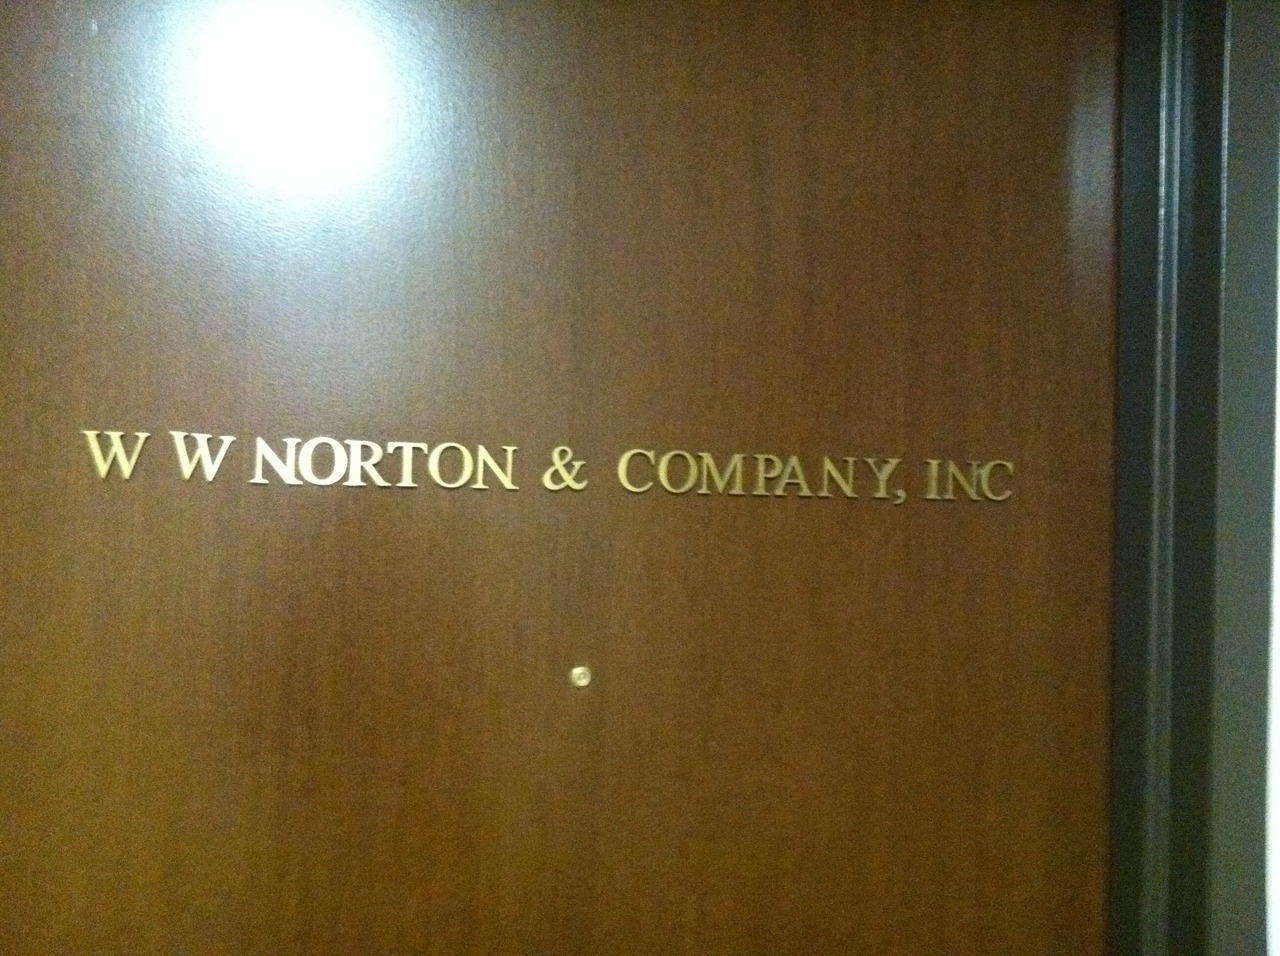 Last week was my one year anniversary of working for W. W. Norton. I wanted to reflect back on how much has changed in this year. Not only moving from one city to another, but personally and professionally. I find myself to be more confident than I was a year ago, confident in my work and discussing my work. Ready to offer the best solutions and to advocate for them. My skills at the craft of design have grown more modestly, but I am happy with this because talking about design is an important strength and I really needed to work on it.